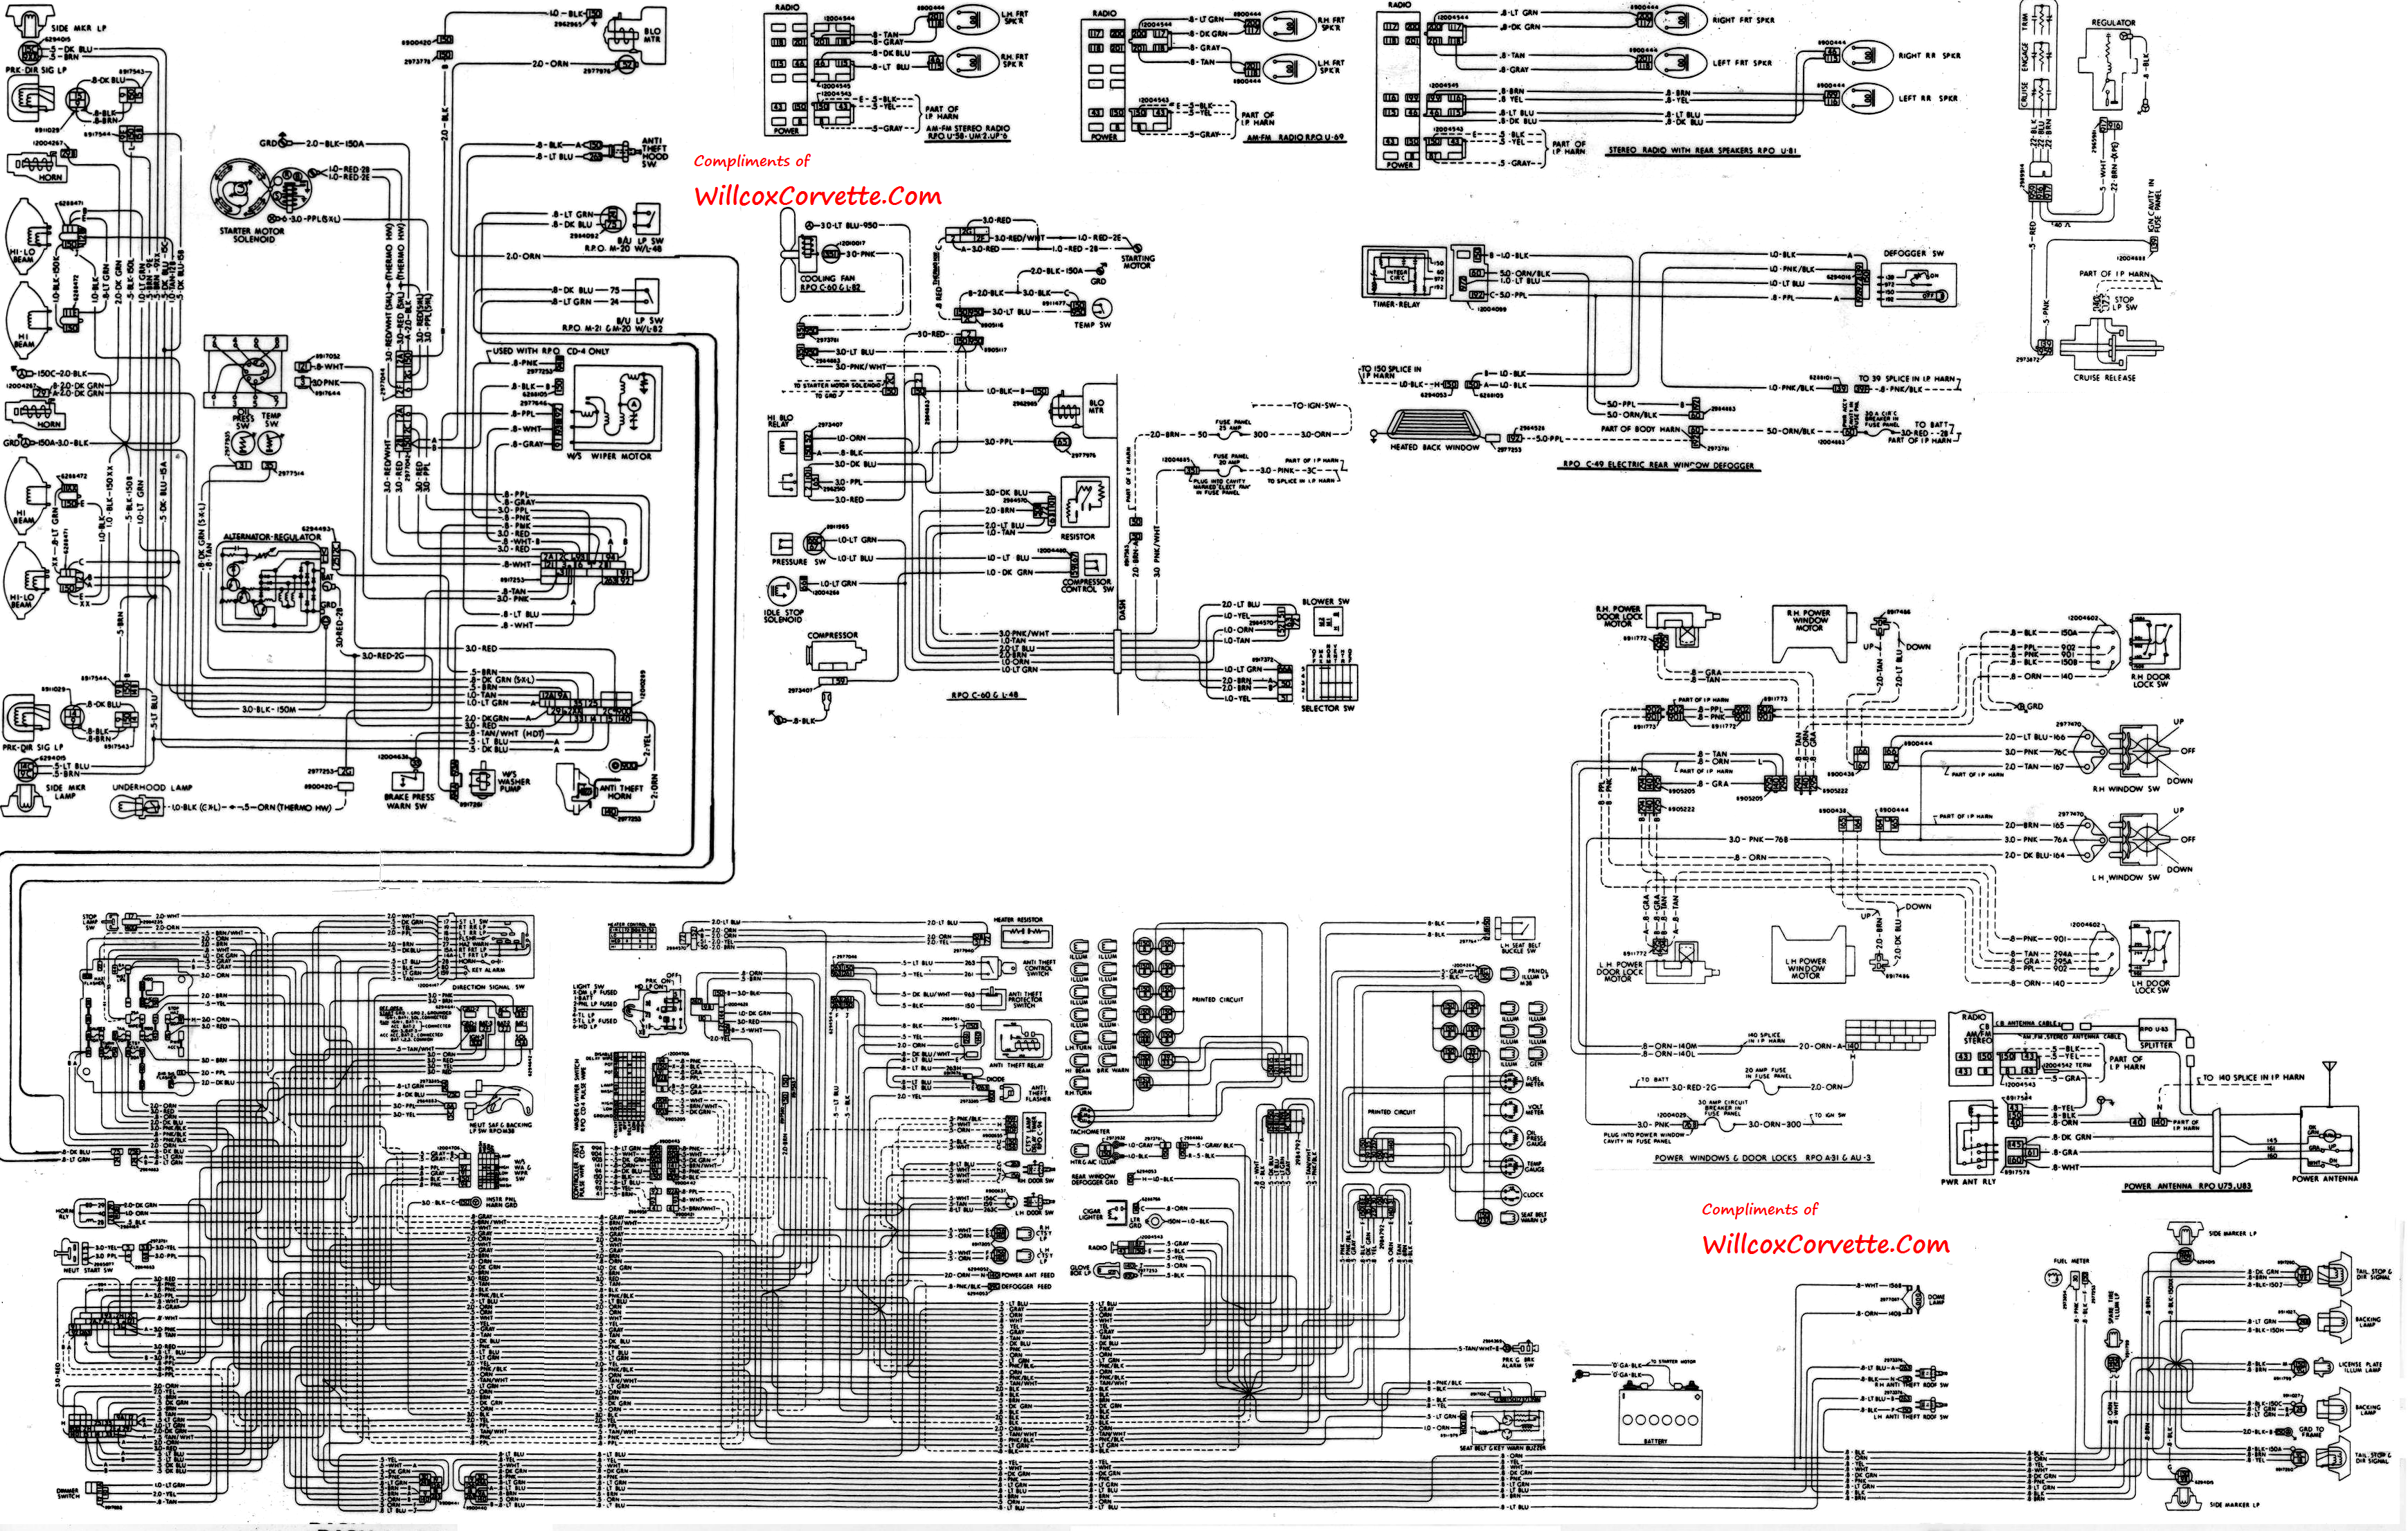 1979 wire diagram 1979 corvette tracer wiring diagram tracer schematic willcox 1979 corvette wiring diagram at webbmarketing.co